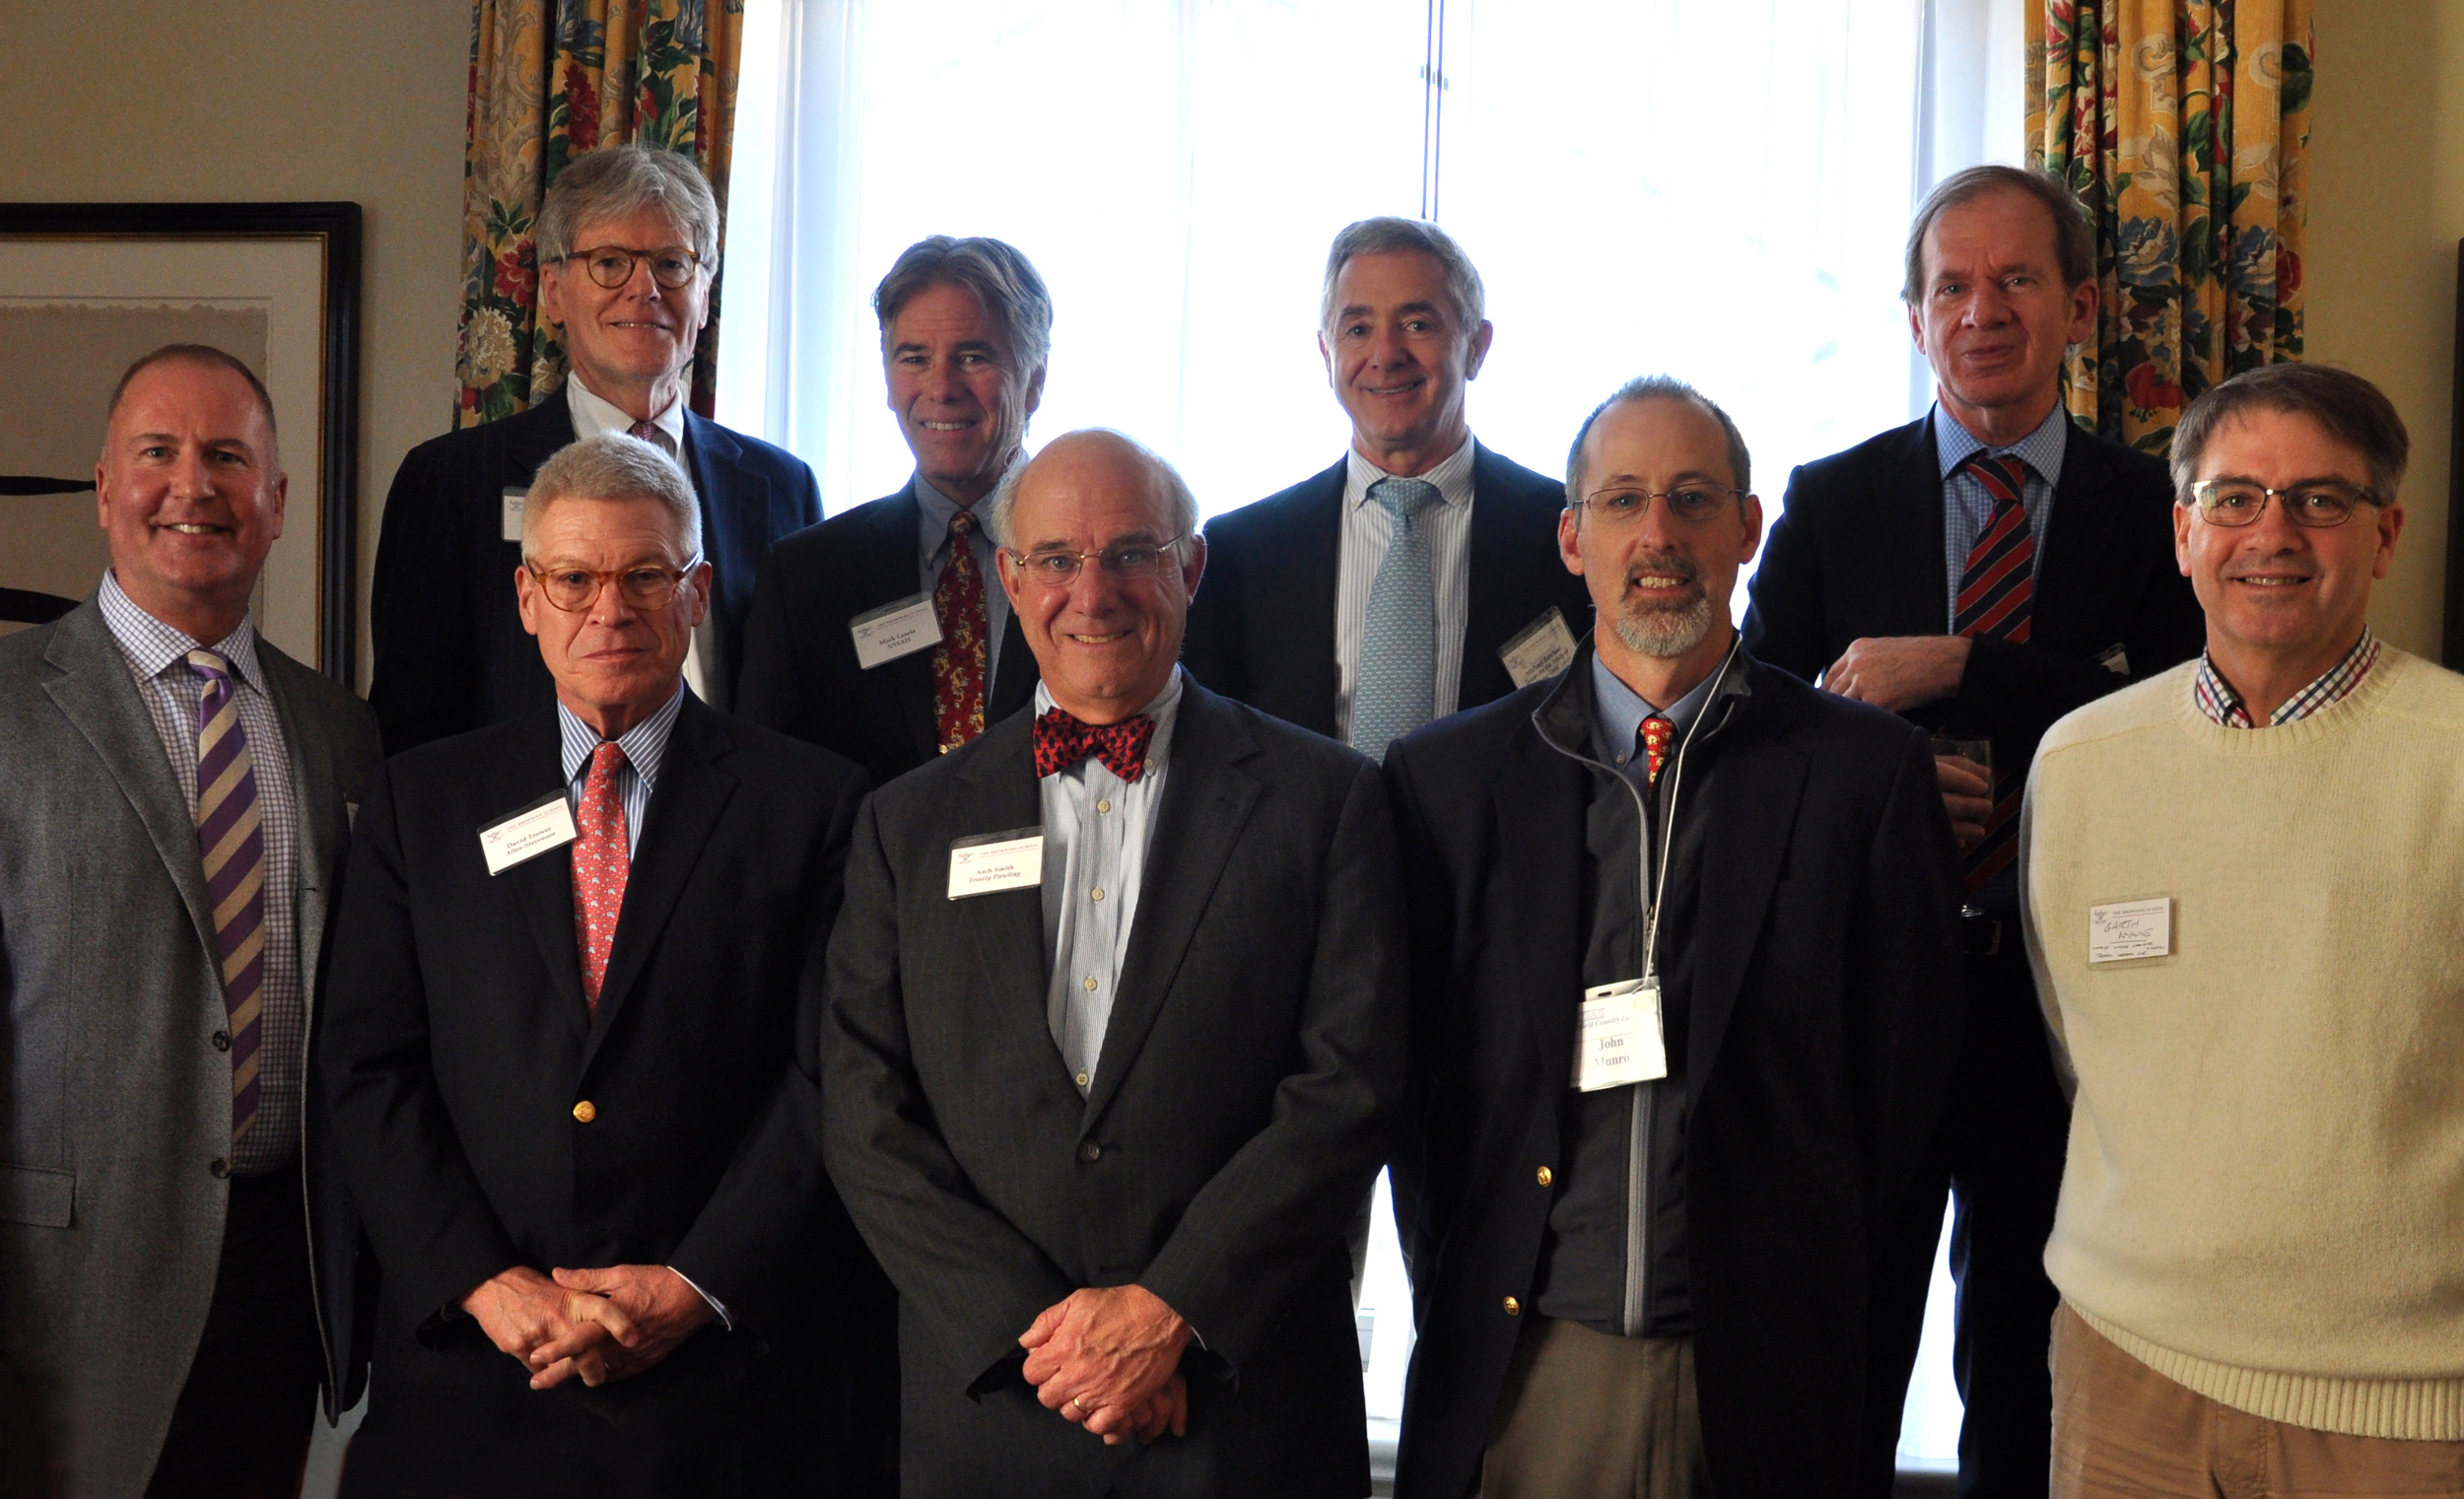 Front row (l-r): Matthew Stuart (Caedmon), David Trower (Allen-Stevenson), Arch Smith (Trinity-Pawling), John Munro (Fairfield CDS), Garth Wynne (Christ Church Grammar School, Perth, Australia)  Back row (l-r): Steve Clement (Browning), Mark Lauria (NYSAIS), Michael Reichert (Center for the Study of Boys' and Girls' Lives), Brad Adams (IBSC)   Not pictured: Betsy Newell (Park Children's Day), Pat Pell (Madison Avenue Presbyterian), Lydia Spinelli (Brick Church)